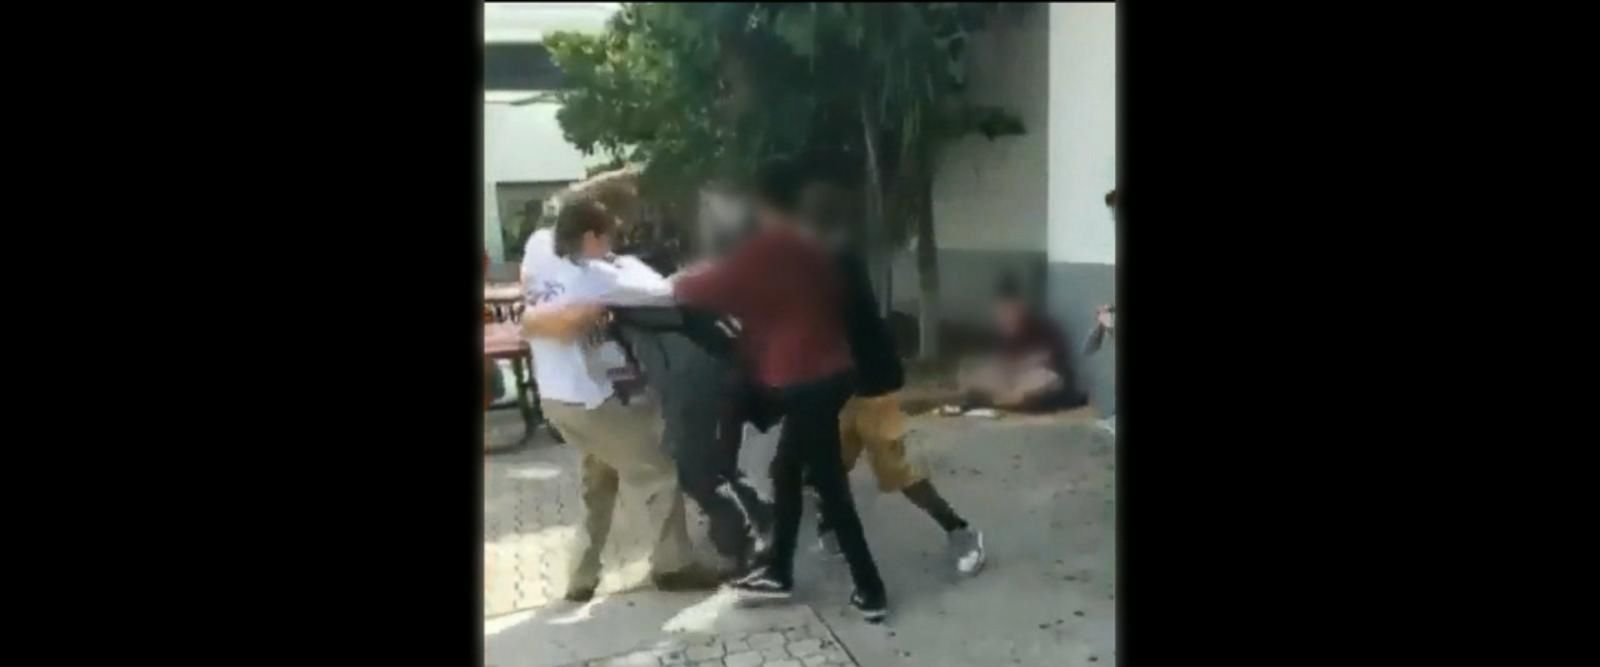 VIDEO: Video of alleged Florida school shooter fighting his classmates surfaces